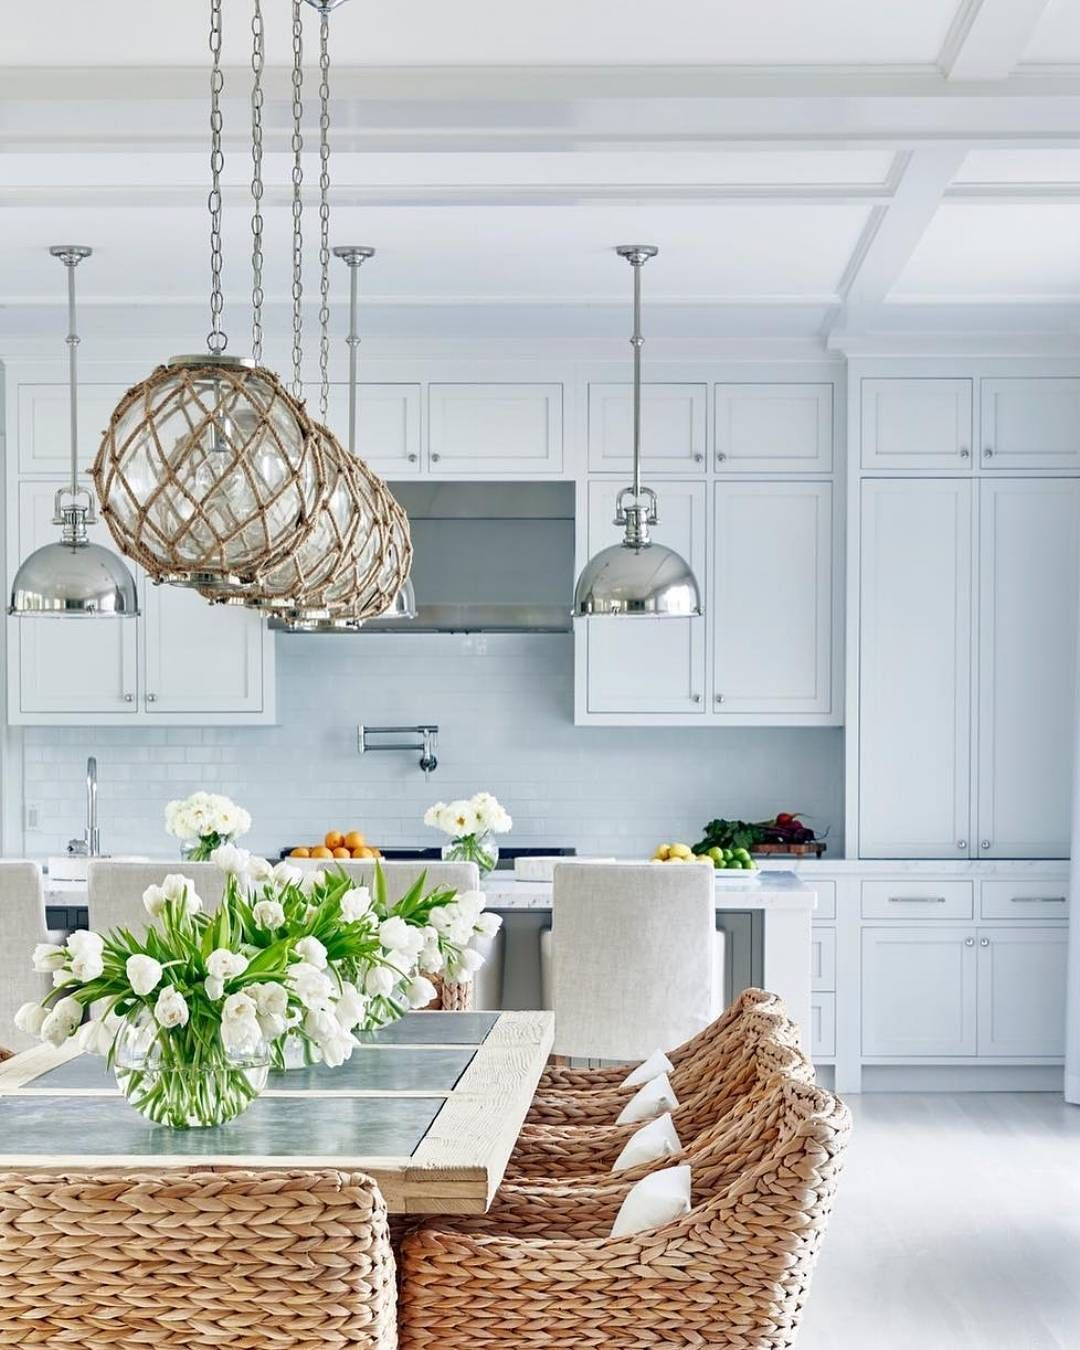 This cozy kitchen full of fresh florals will never go out of style ...